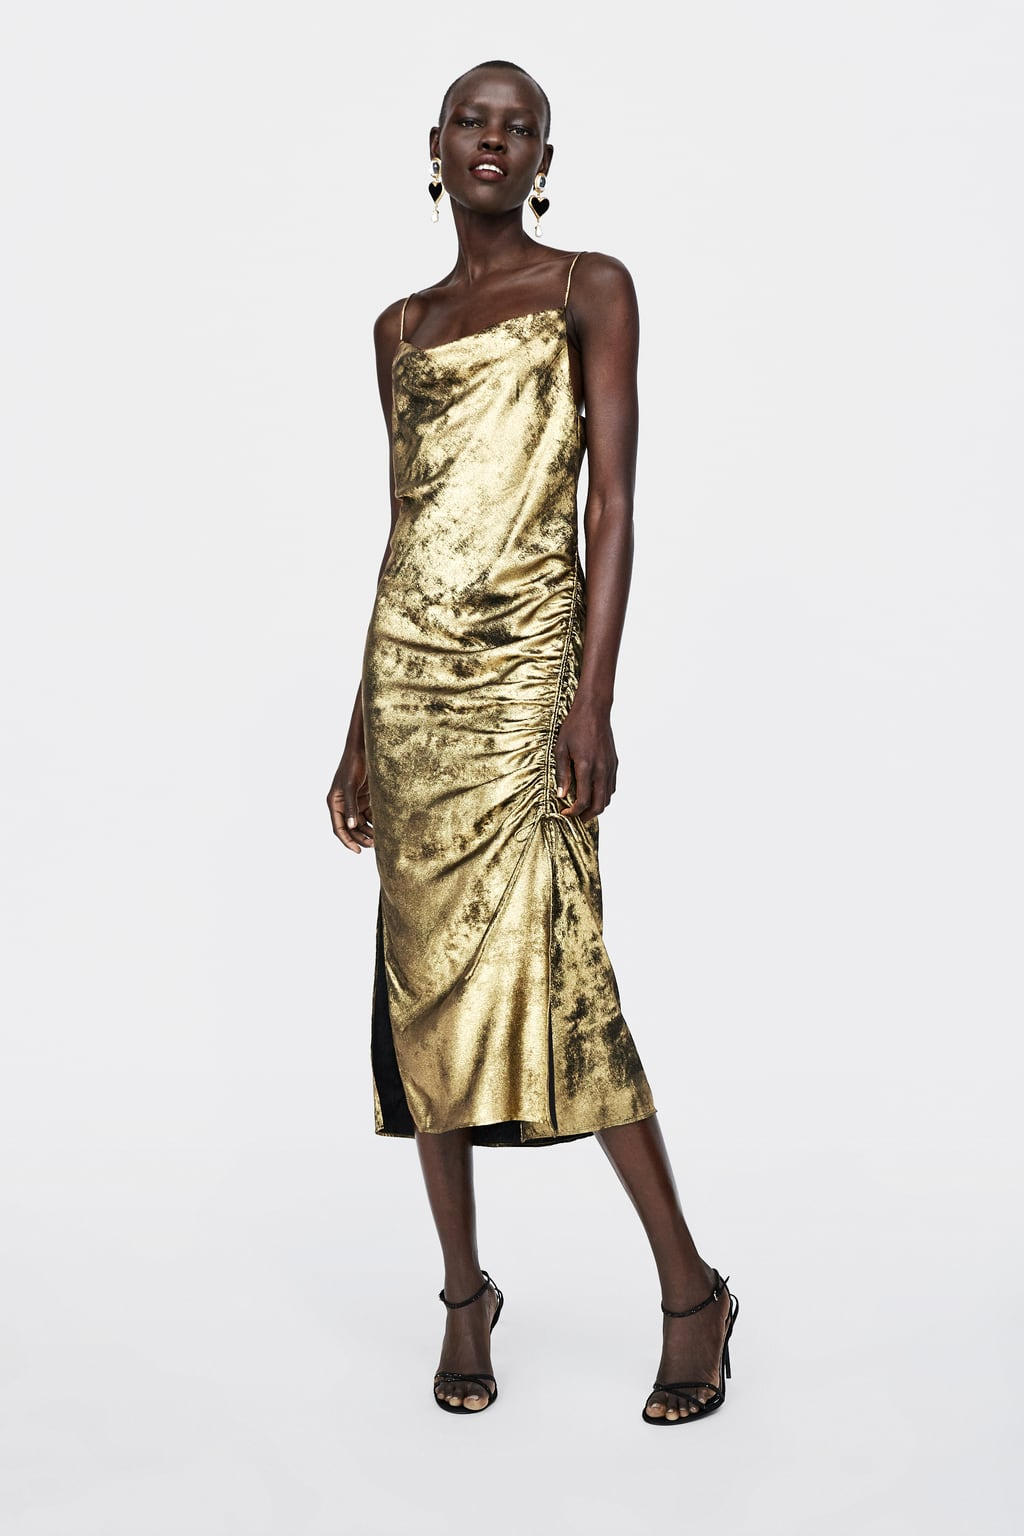 ZARA Metallic Dress- $69